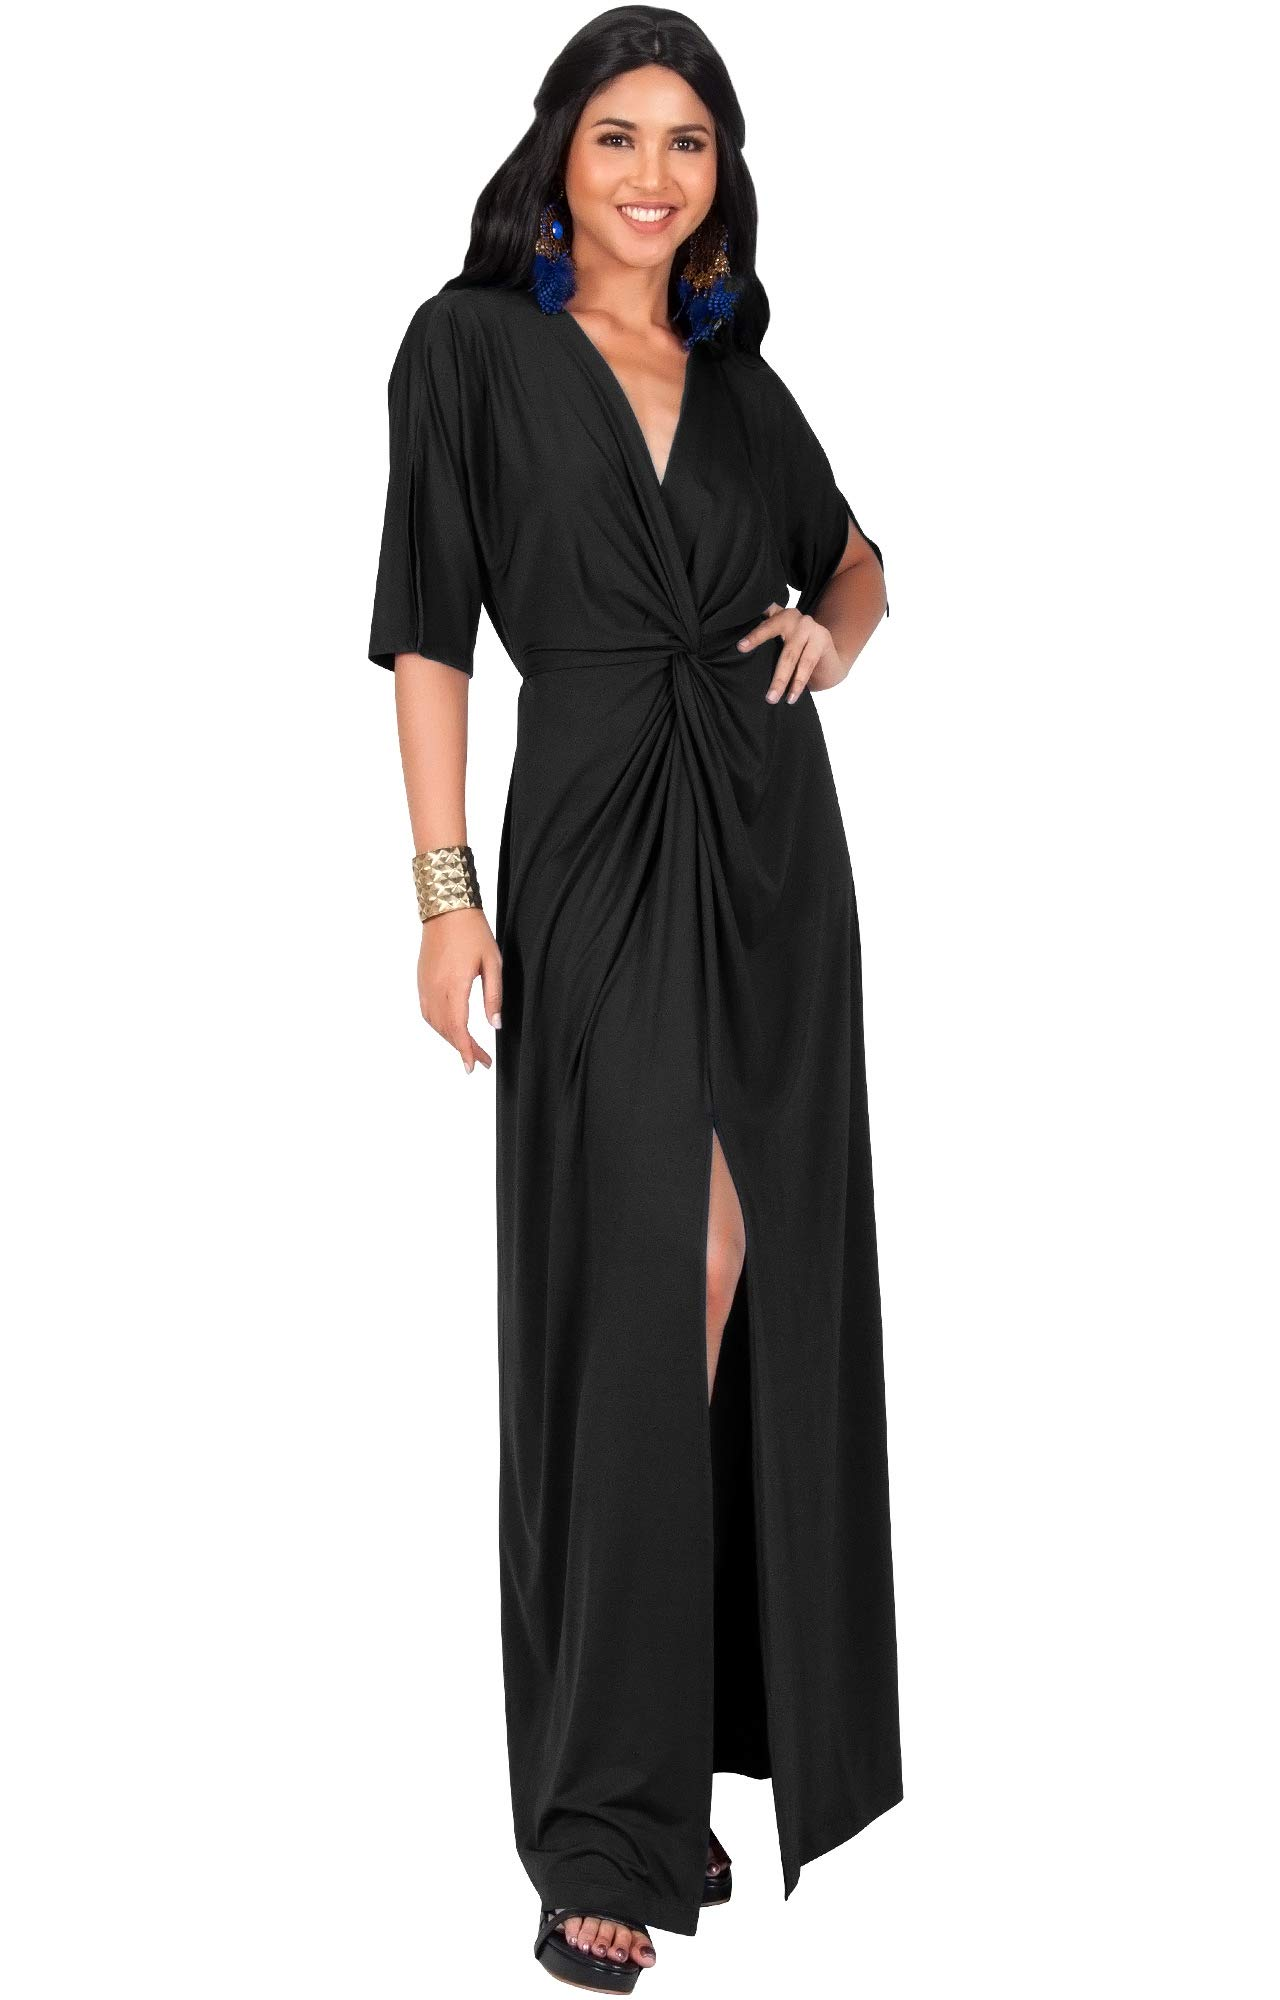 bd393f906d KOH KOH Plus Size Womens Long Sexy V-Neck Short Sleeve Cocktail Evening  Bridesmaid Wedding Party Slimming Casual Summer Maxi Dress Dresses Gown  Gowns, ...